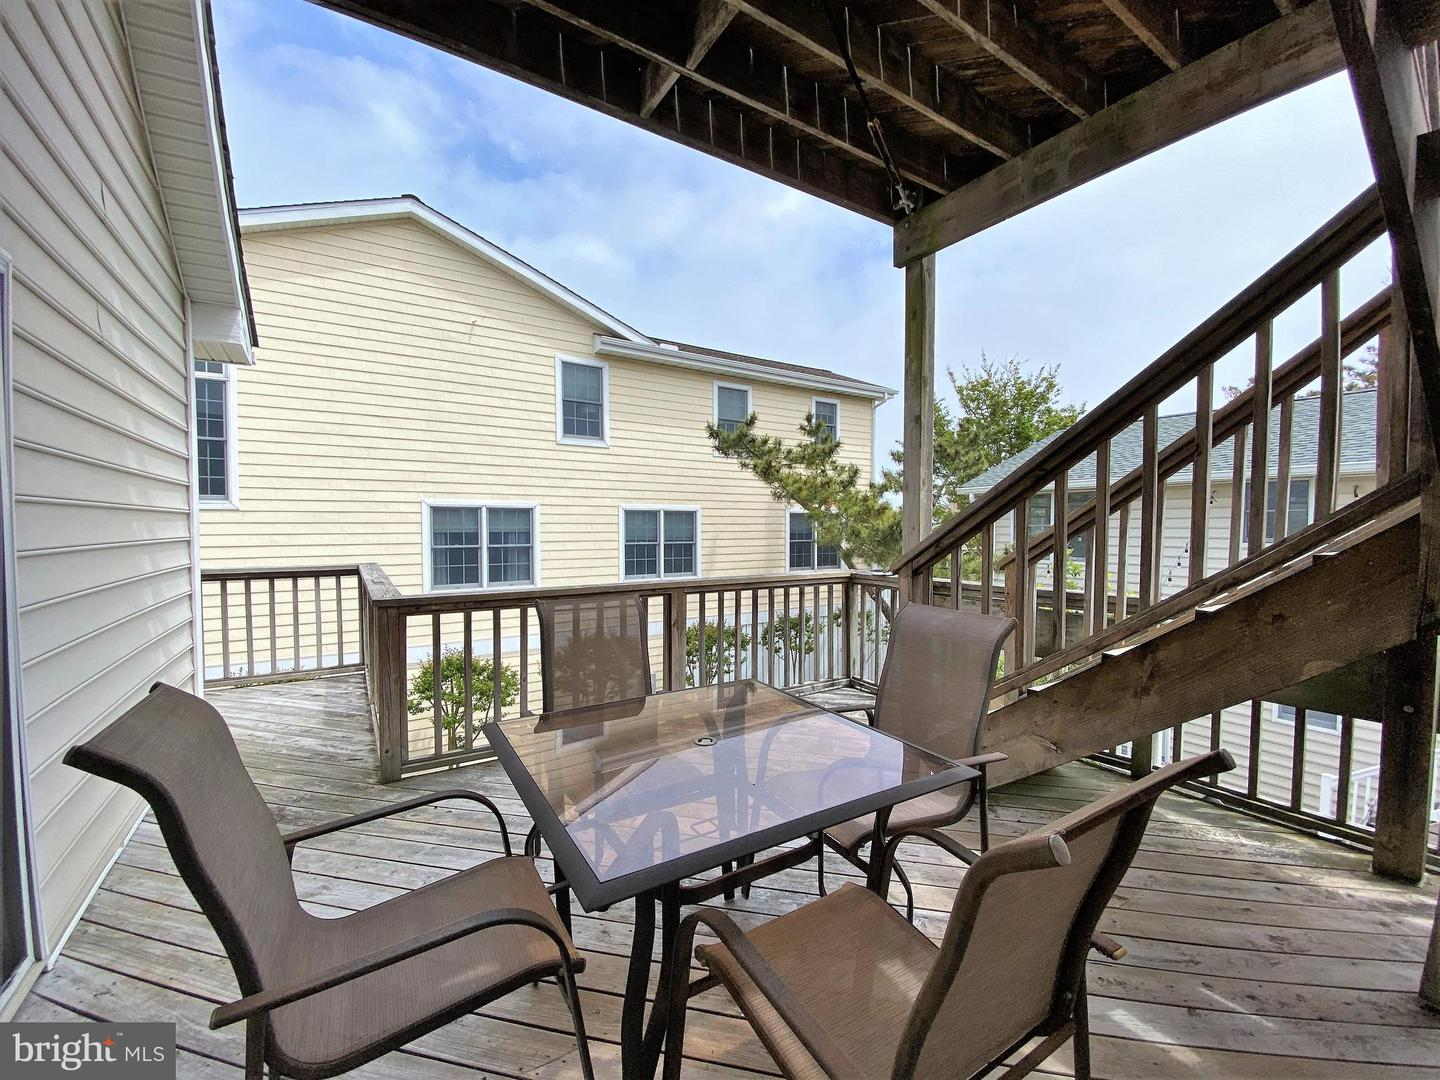 DESU161746-304145716437-2020-05-30-11-15-26 116 Hollywood St | Bethany Beach, DE Real Estate For Sale | MLS# Desu161746  - Ocean Atlantic